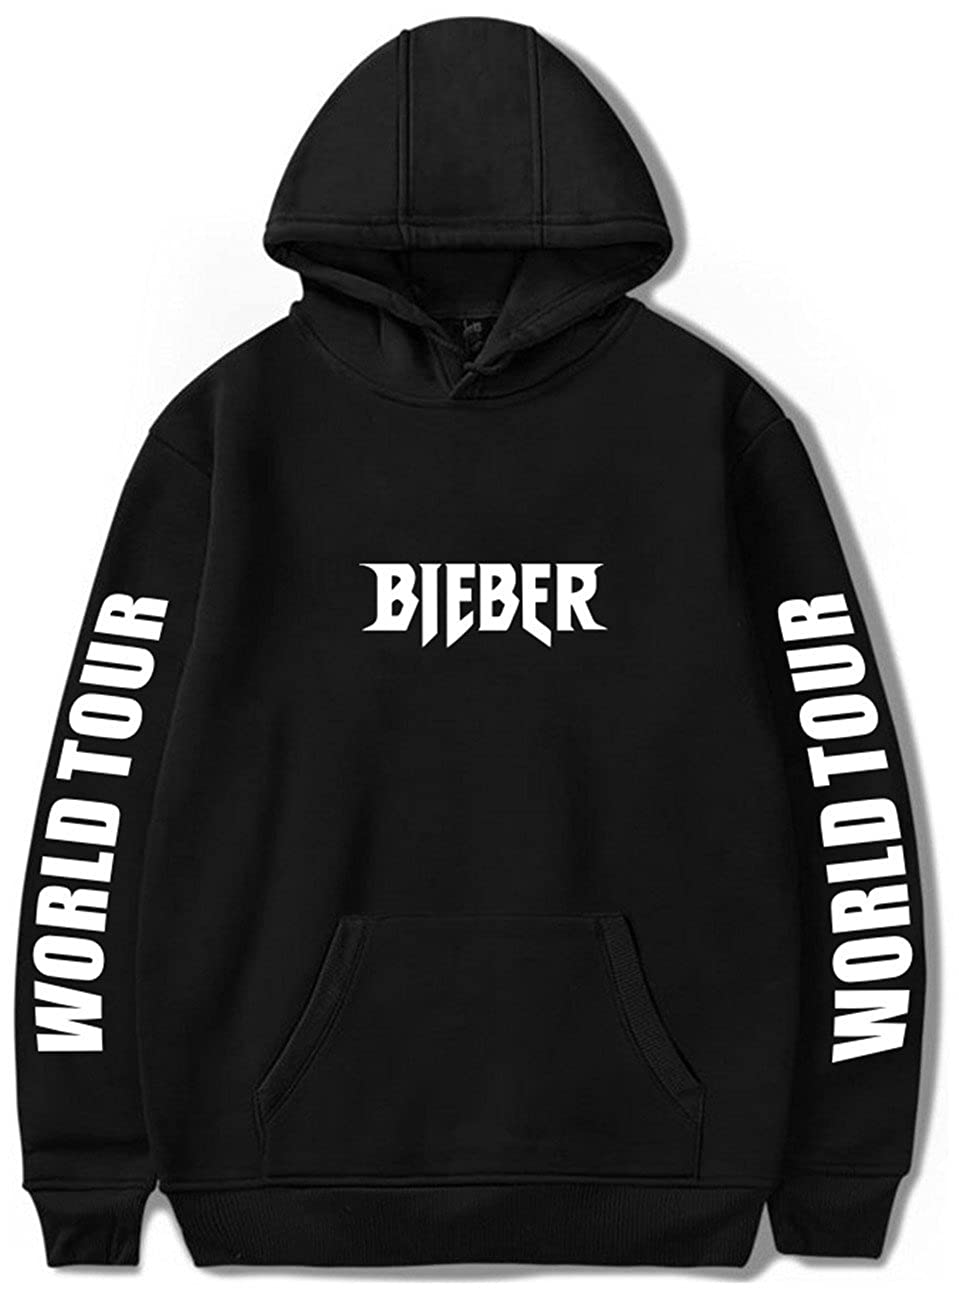 Amazon.com: SERAPHY Unisex Pullover Justin Bieber Hoodie Purpose Tour Bieber World Tour Sweatshirt for Women/Men: Clothing